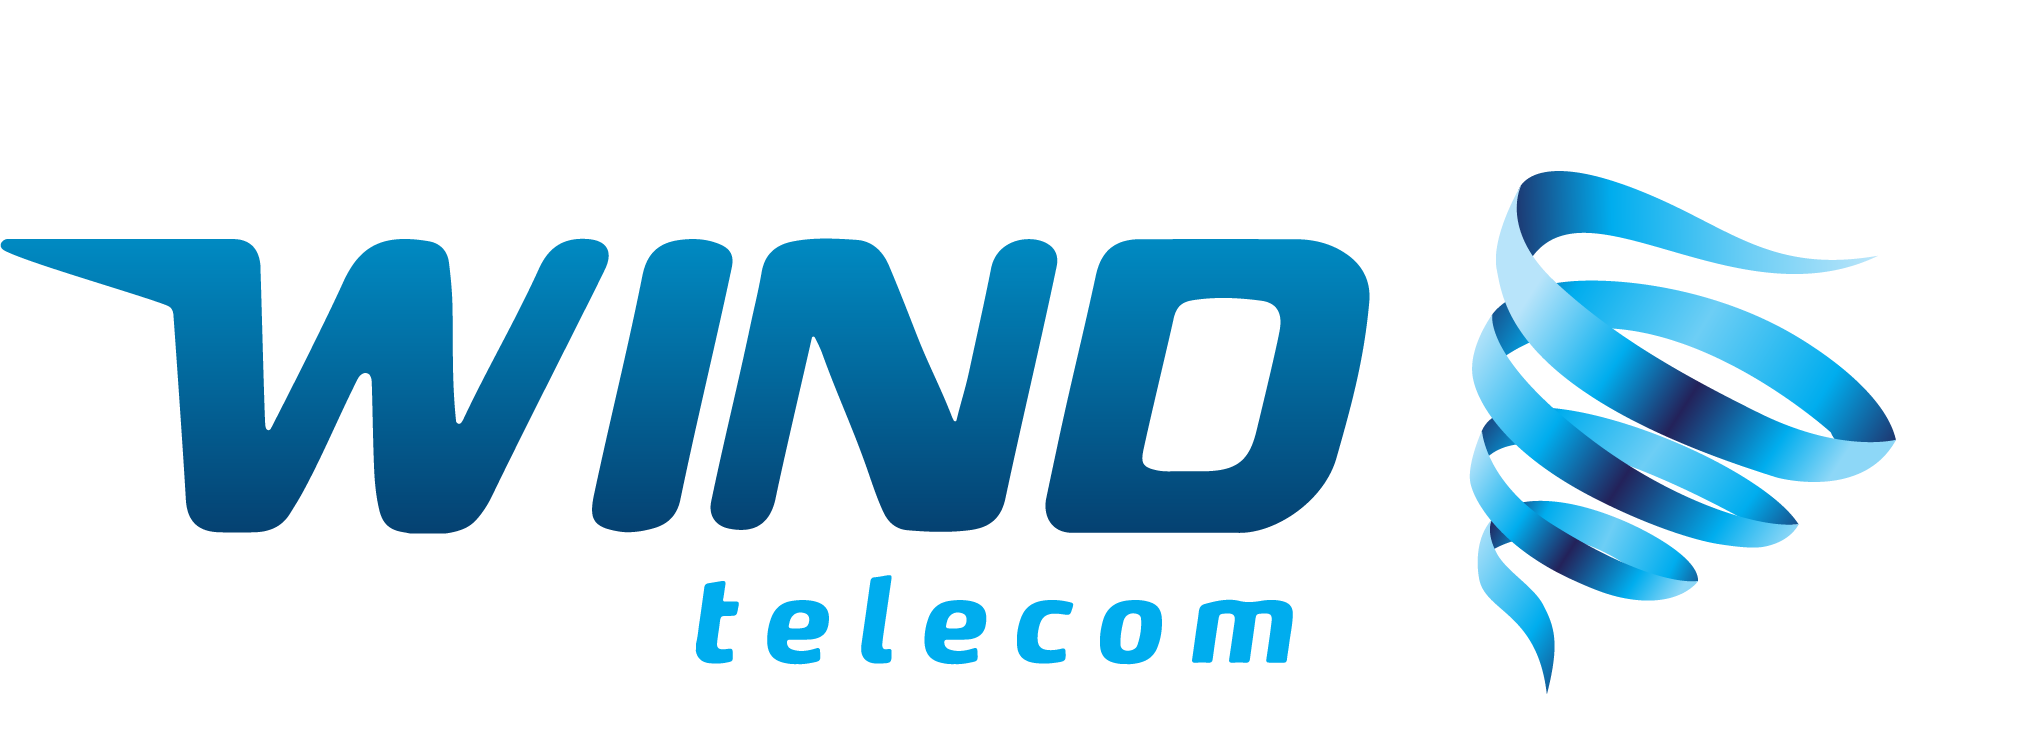 Socios - image Wind-Telecom-Logo on http://gcs-international.com